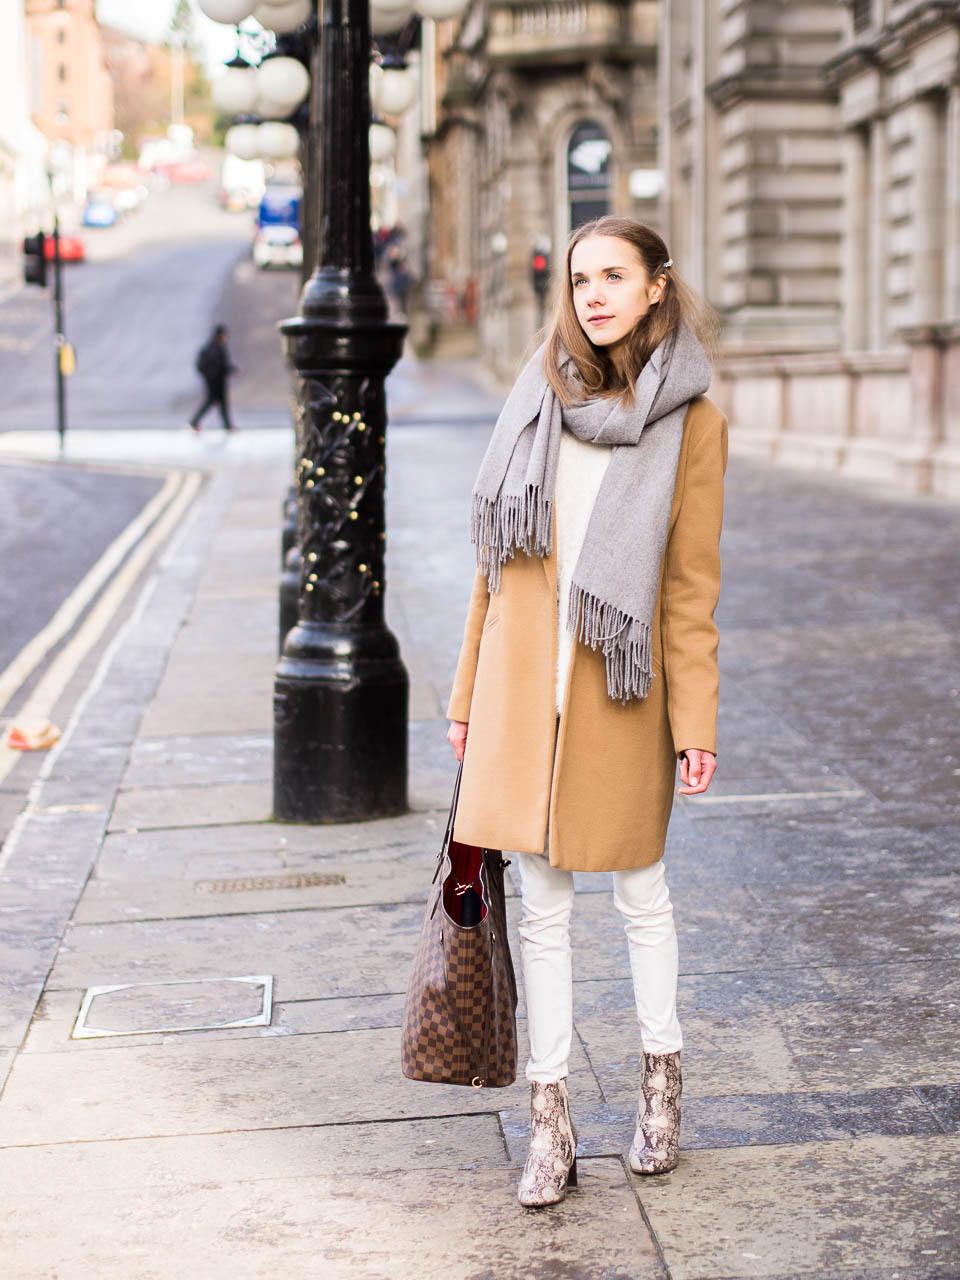 all-white-outfit-with-camel-coat-fashion-blogger-inspiration